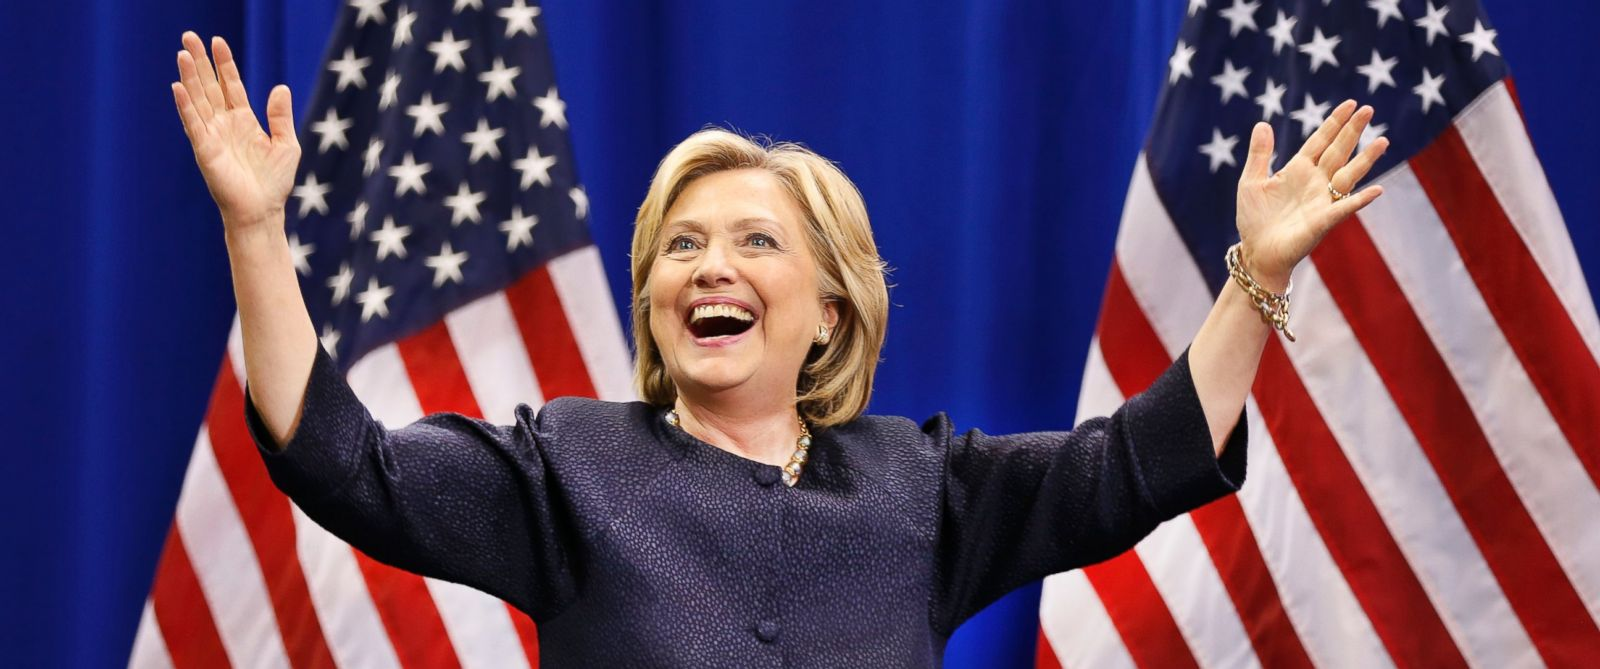 PHOTO: Democratic presidential candidate Hillary Rodham Clinton arrives to a cheering crowd during the states annual Democratic convention, Sept. 19, 2015, in Manchester, N.H.